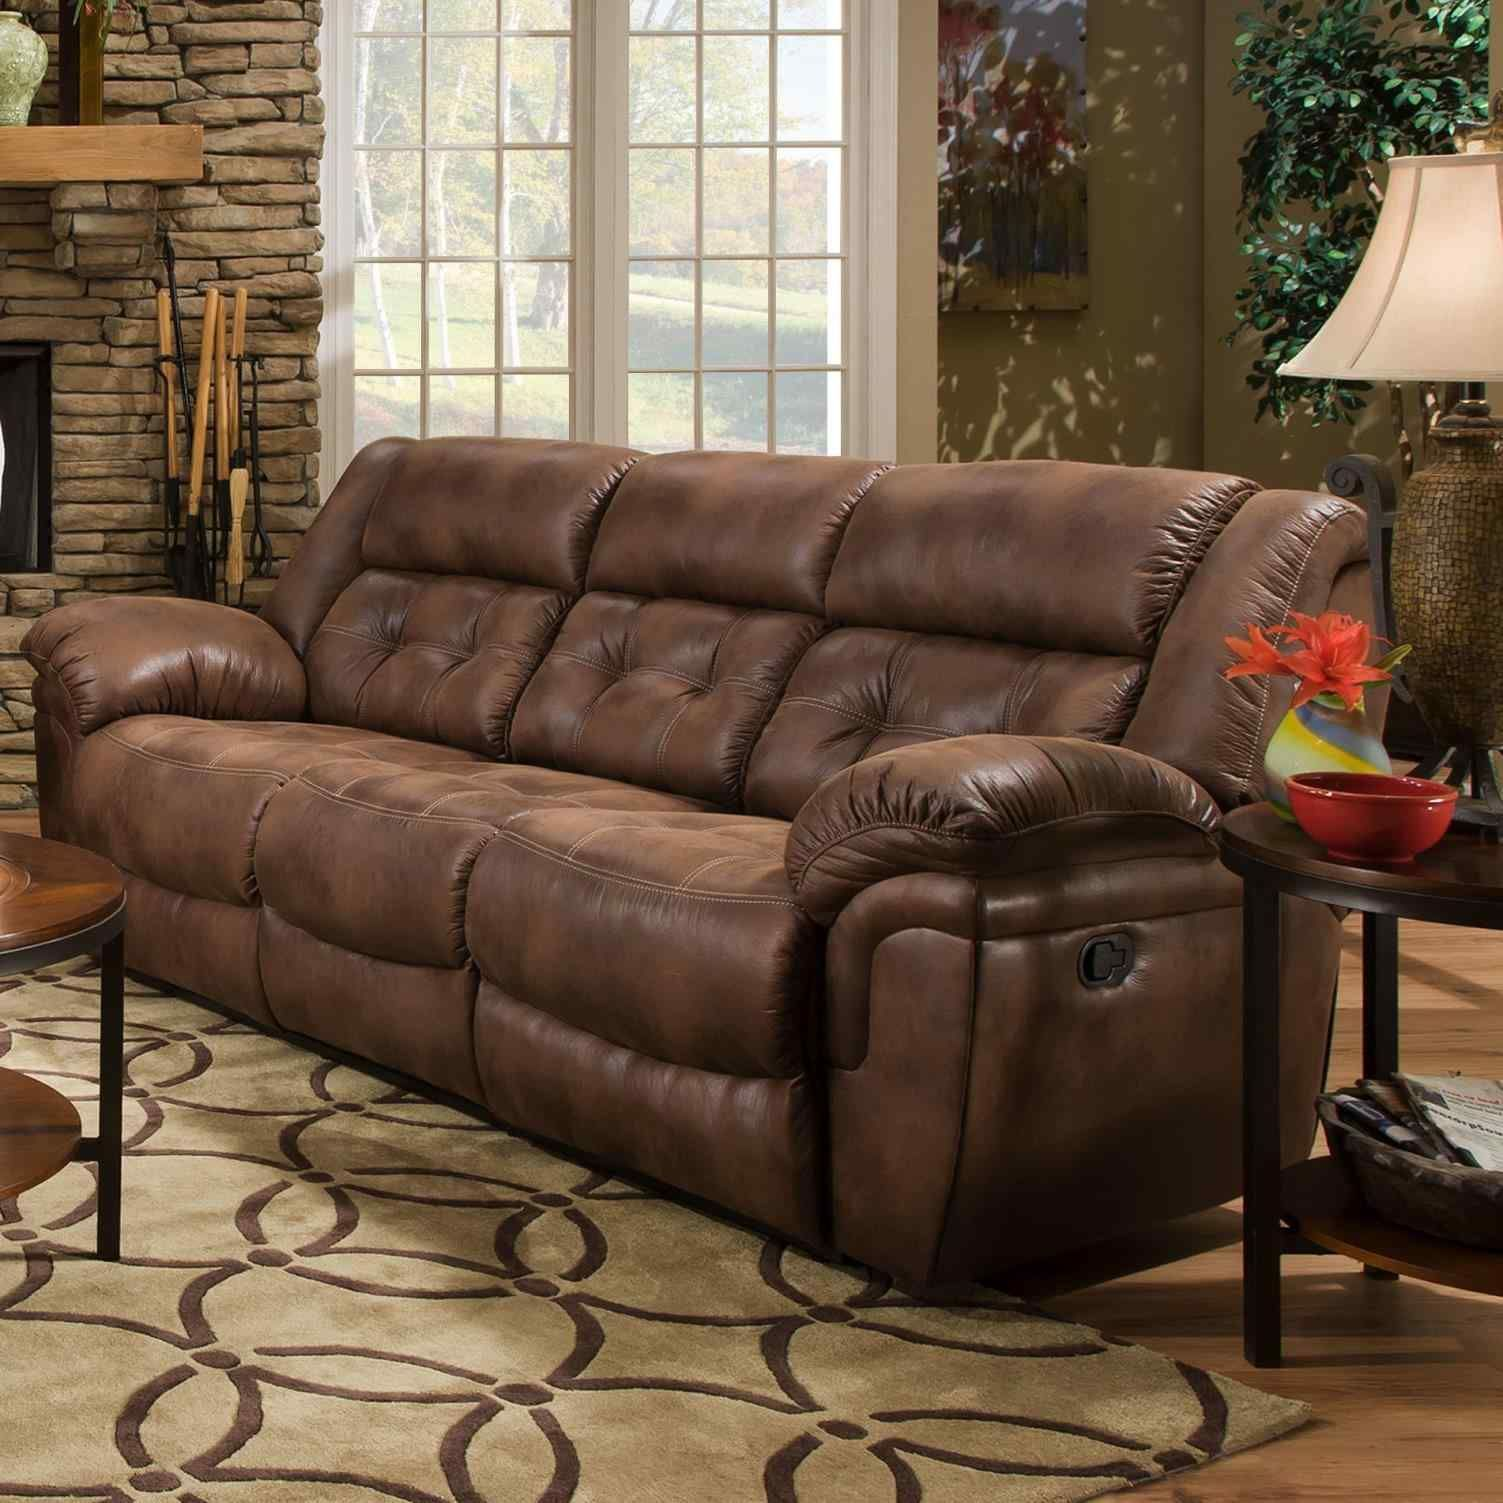 Terrific Red Simmons Sectional Sofa Reviews Barrel Studio Upholstery Ocoug Best Dining Table And Chair Ideas Images Ocougorg